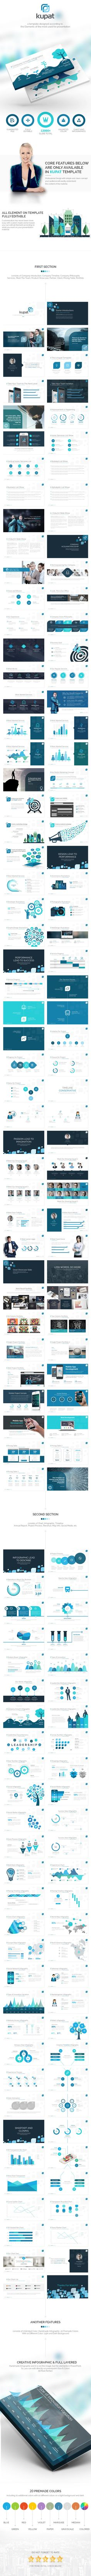 Kupat - Big Deal Powerpoint Template PowerPoint Template / Theme / Presentation / Slides / Background / Power Point #powerpoint #template #theme